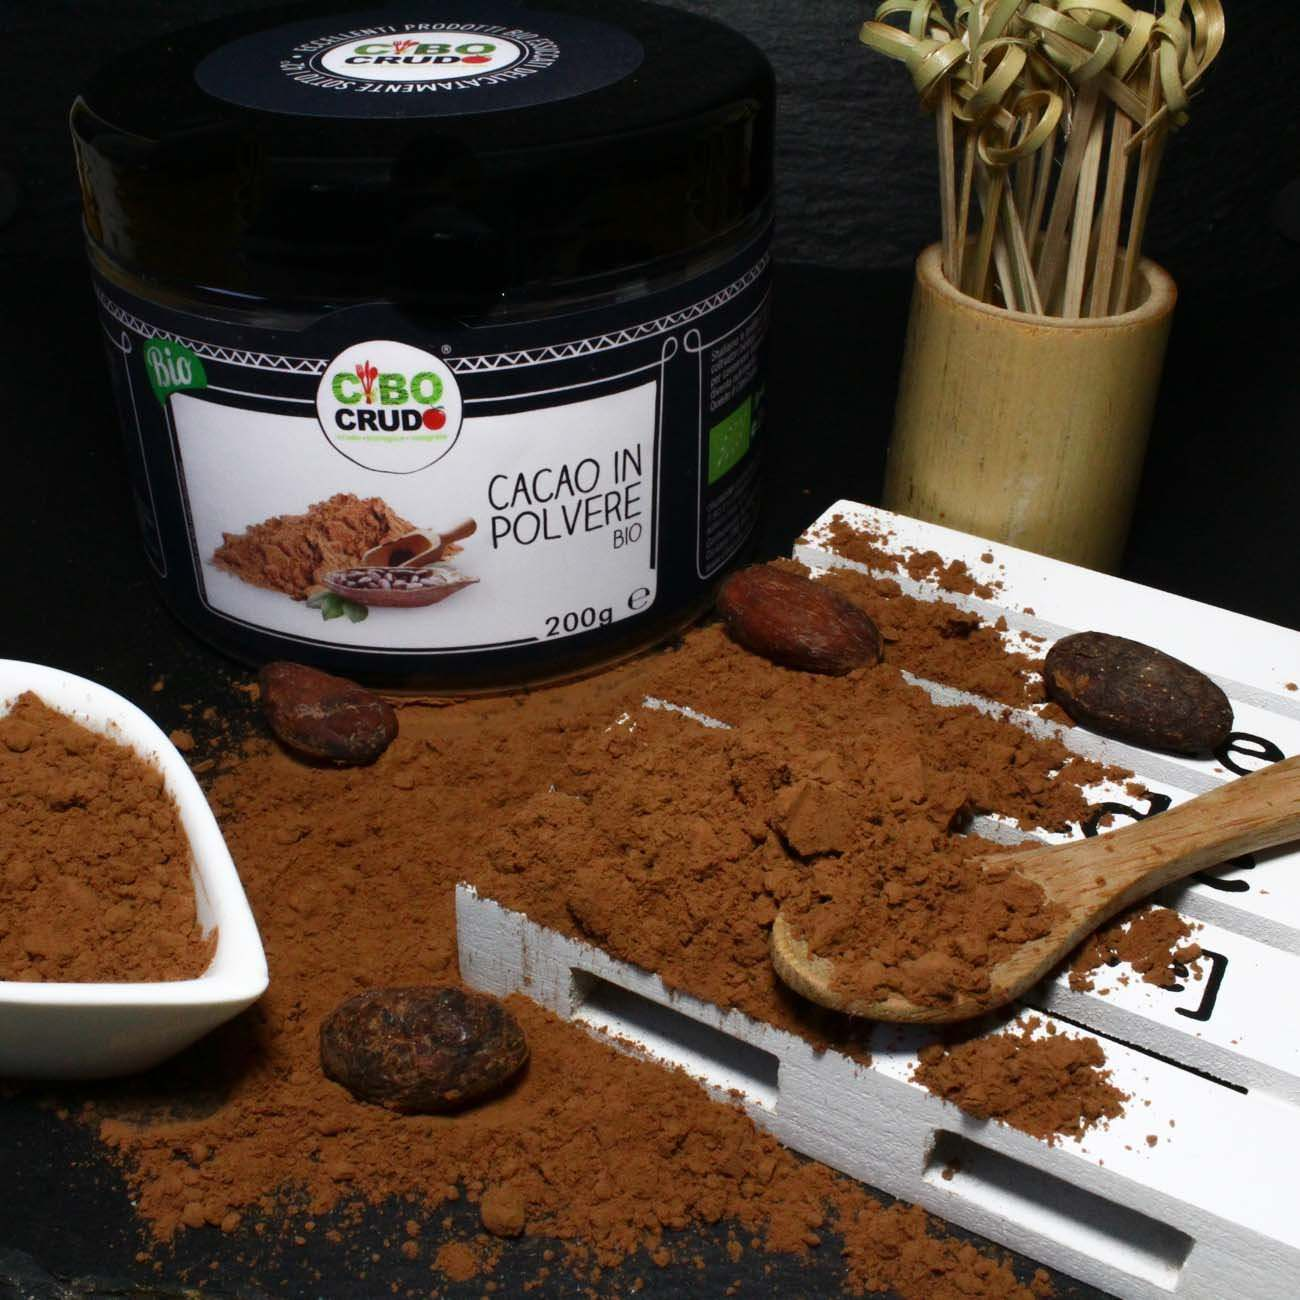 Cacao in Polvere<br/>Crudo Bio - Cocoa Powder Raw Organic - 200g